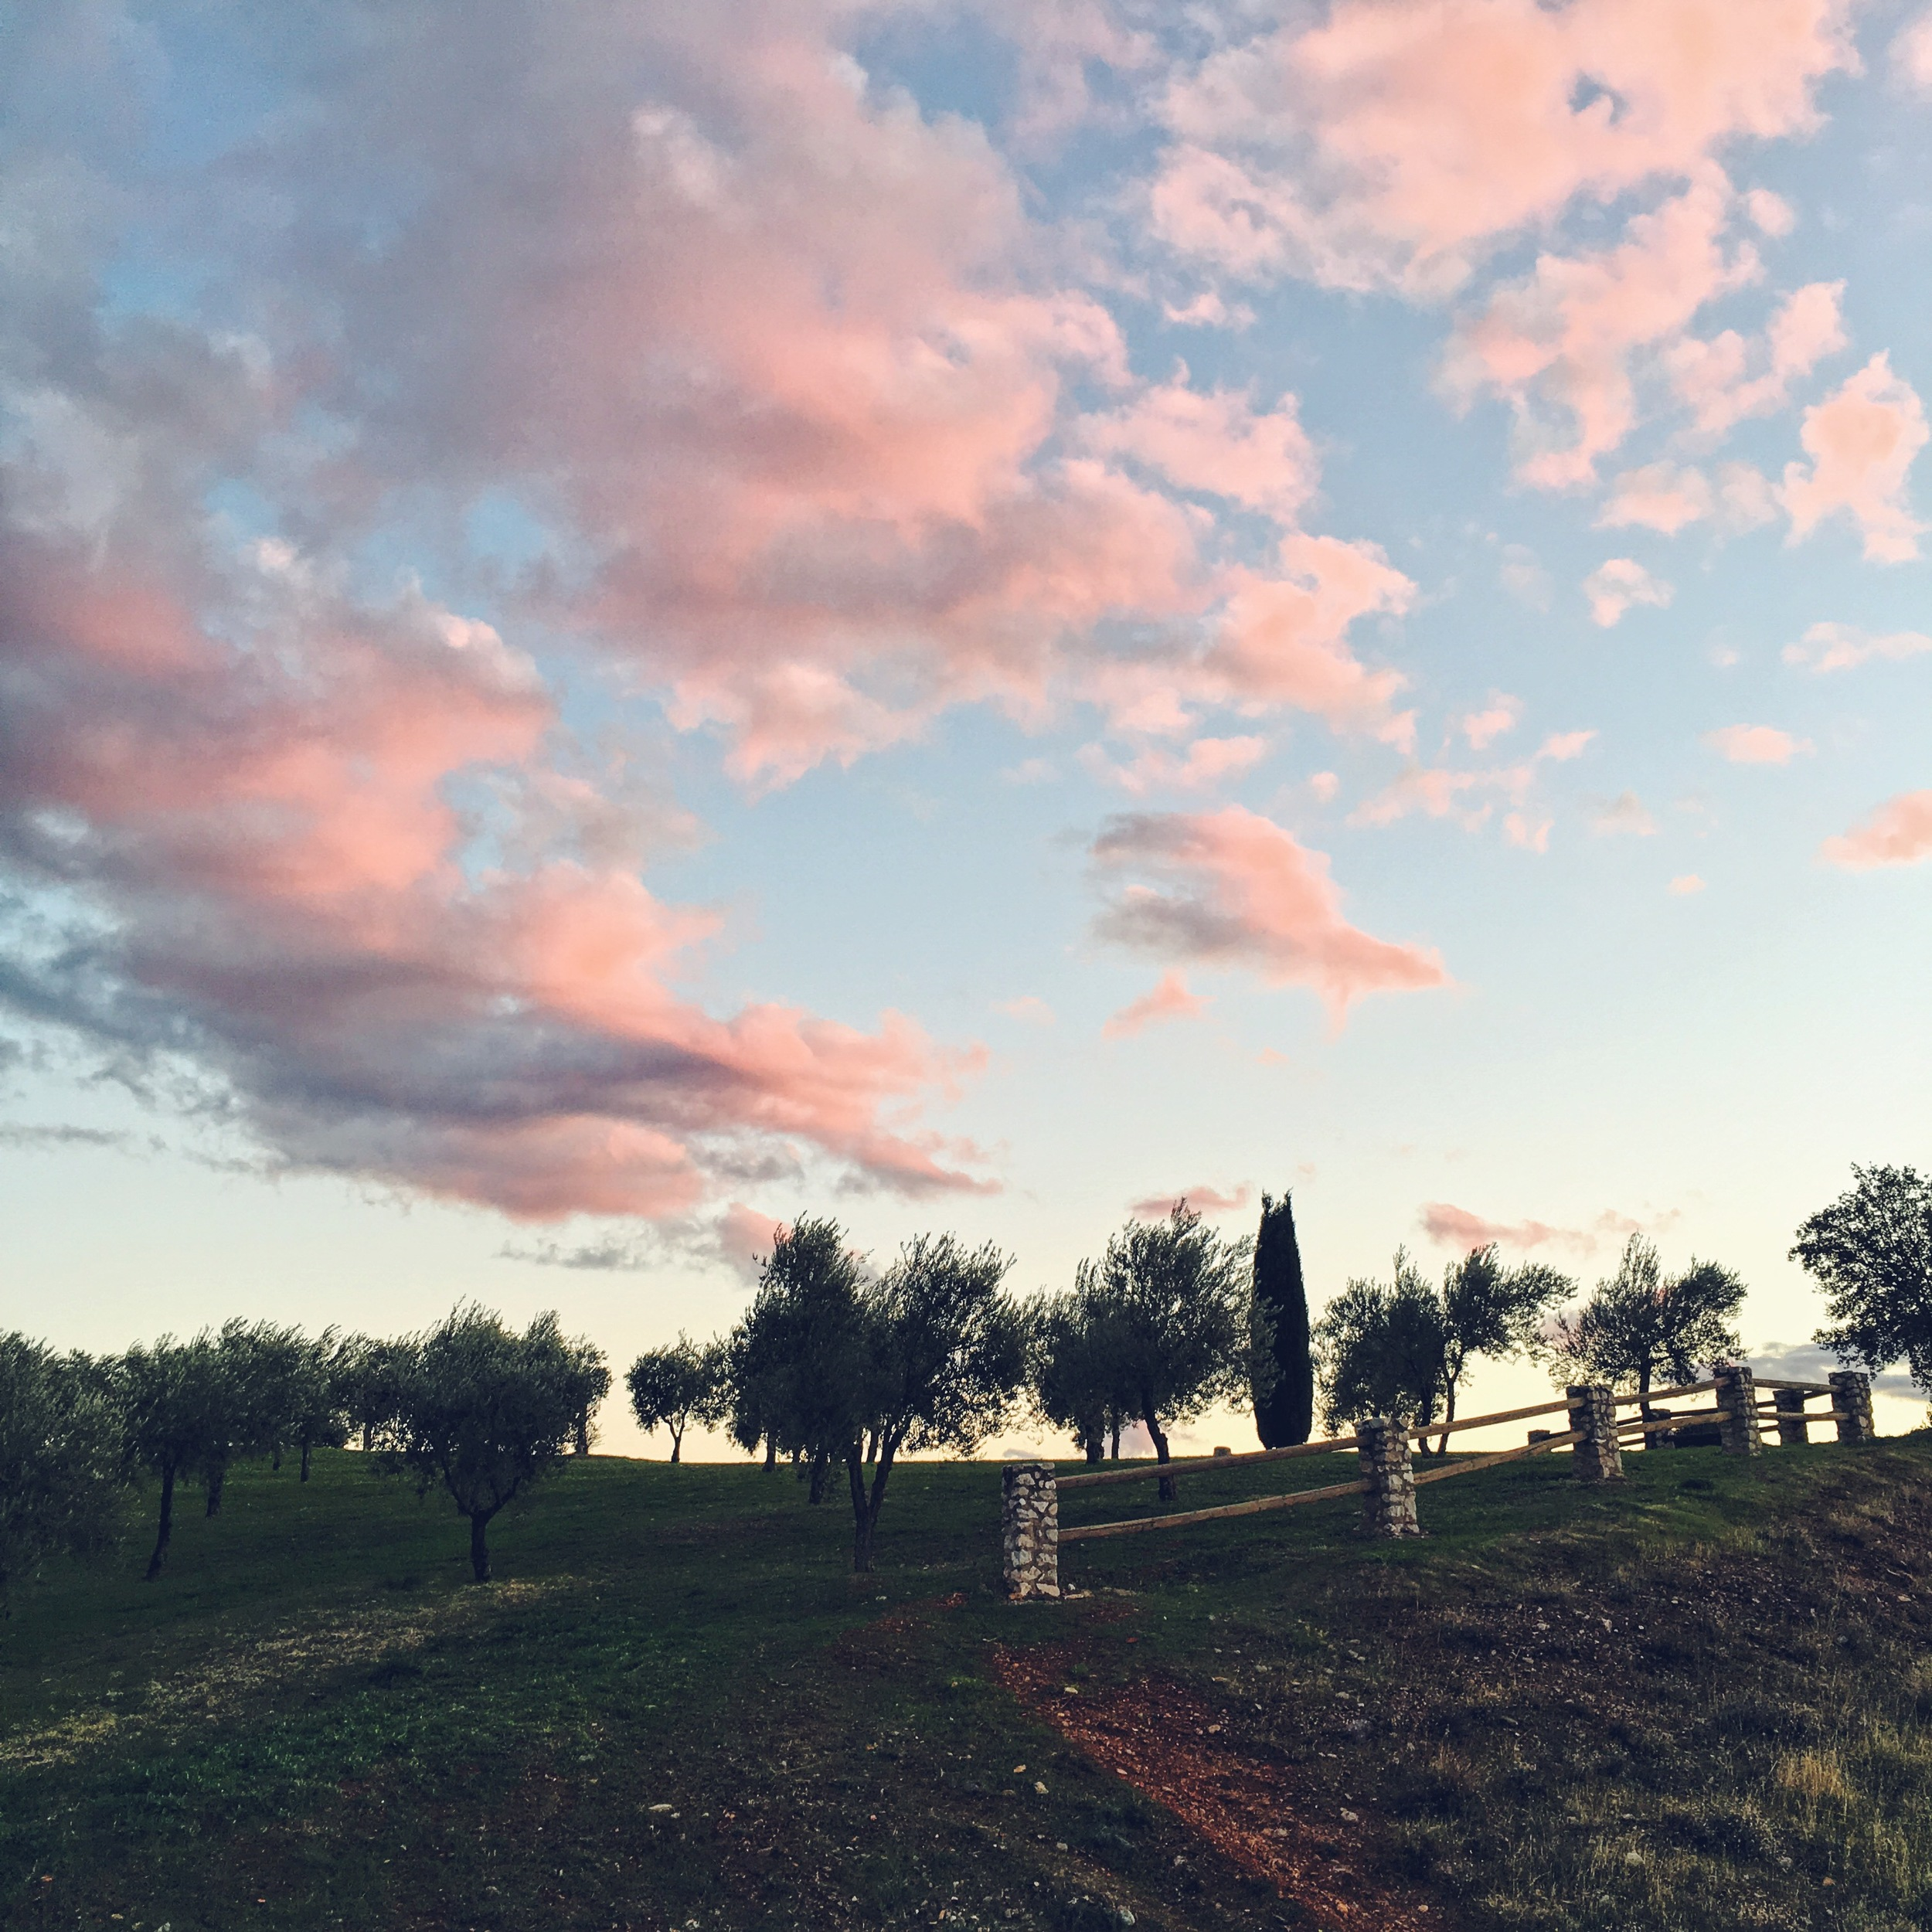 Sunset over the olive grove in Granda Spain